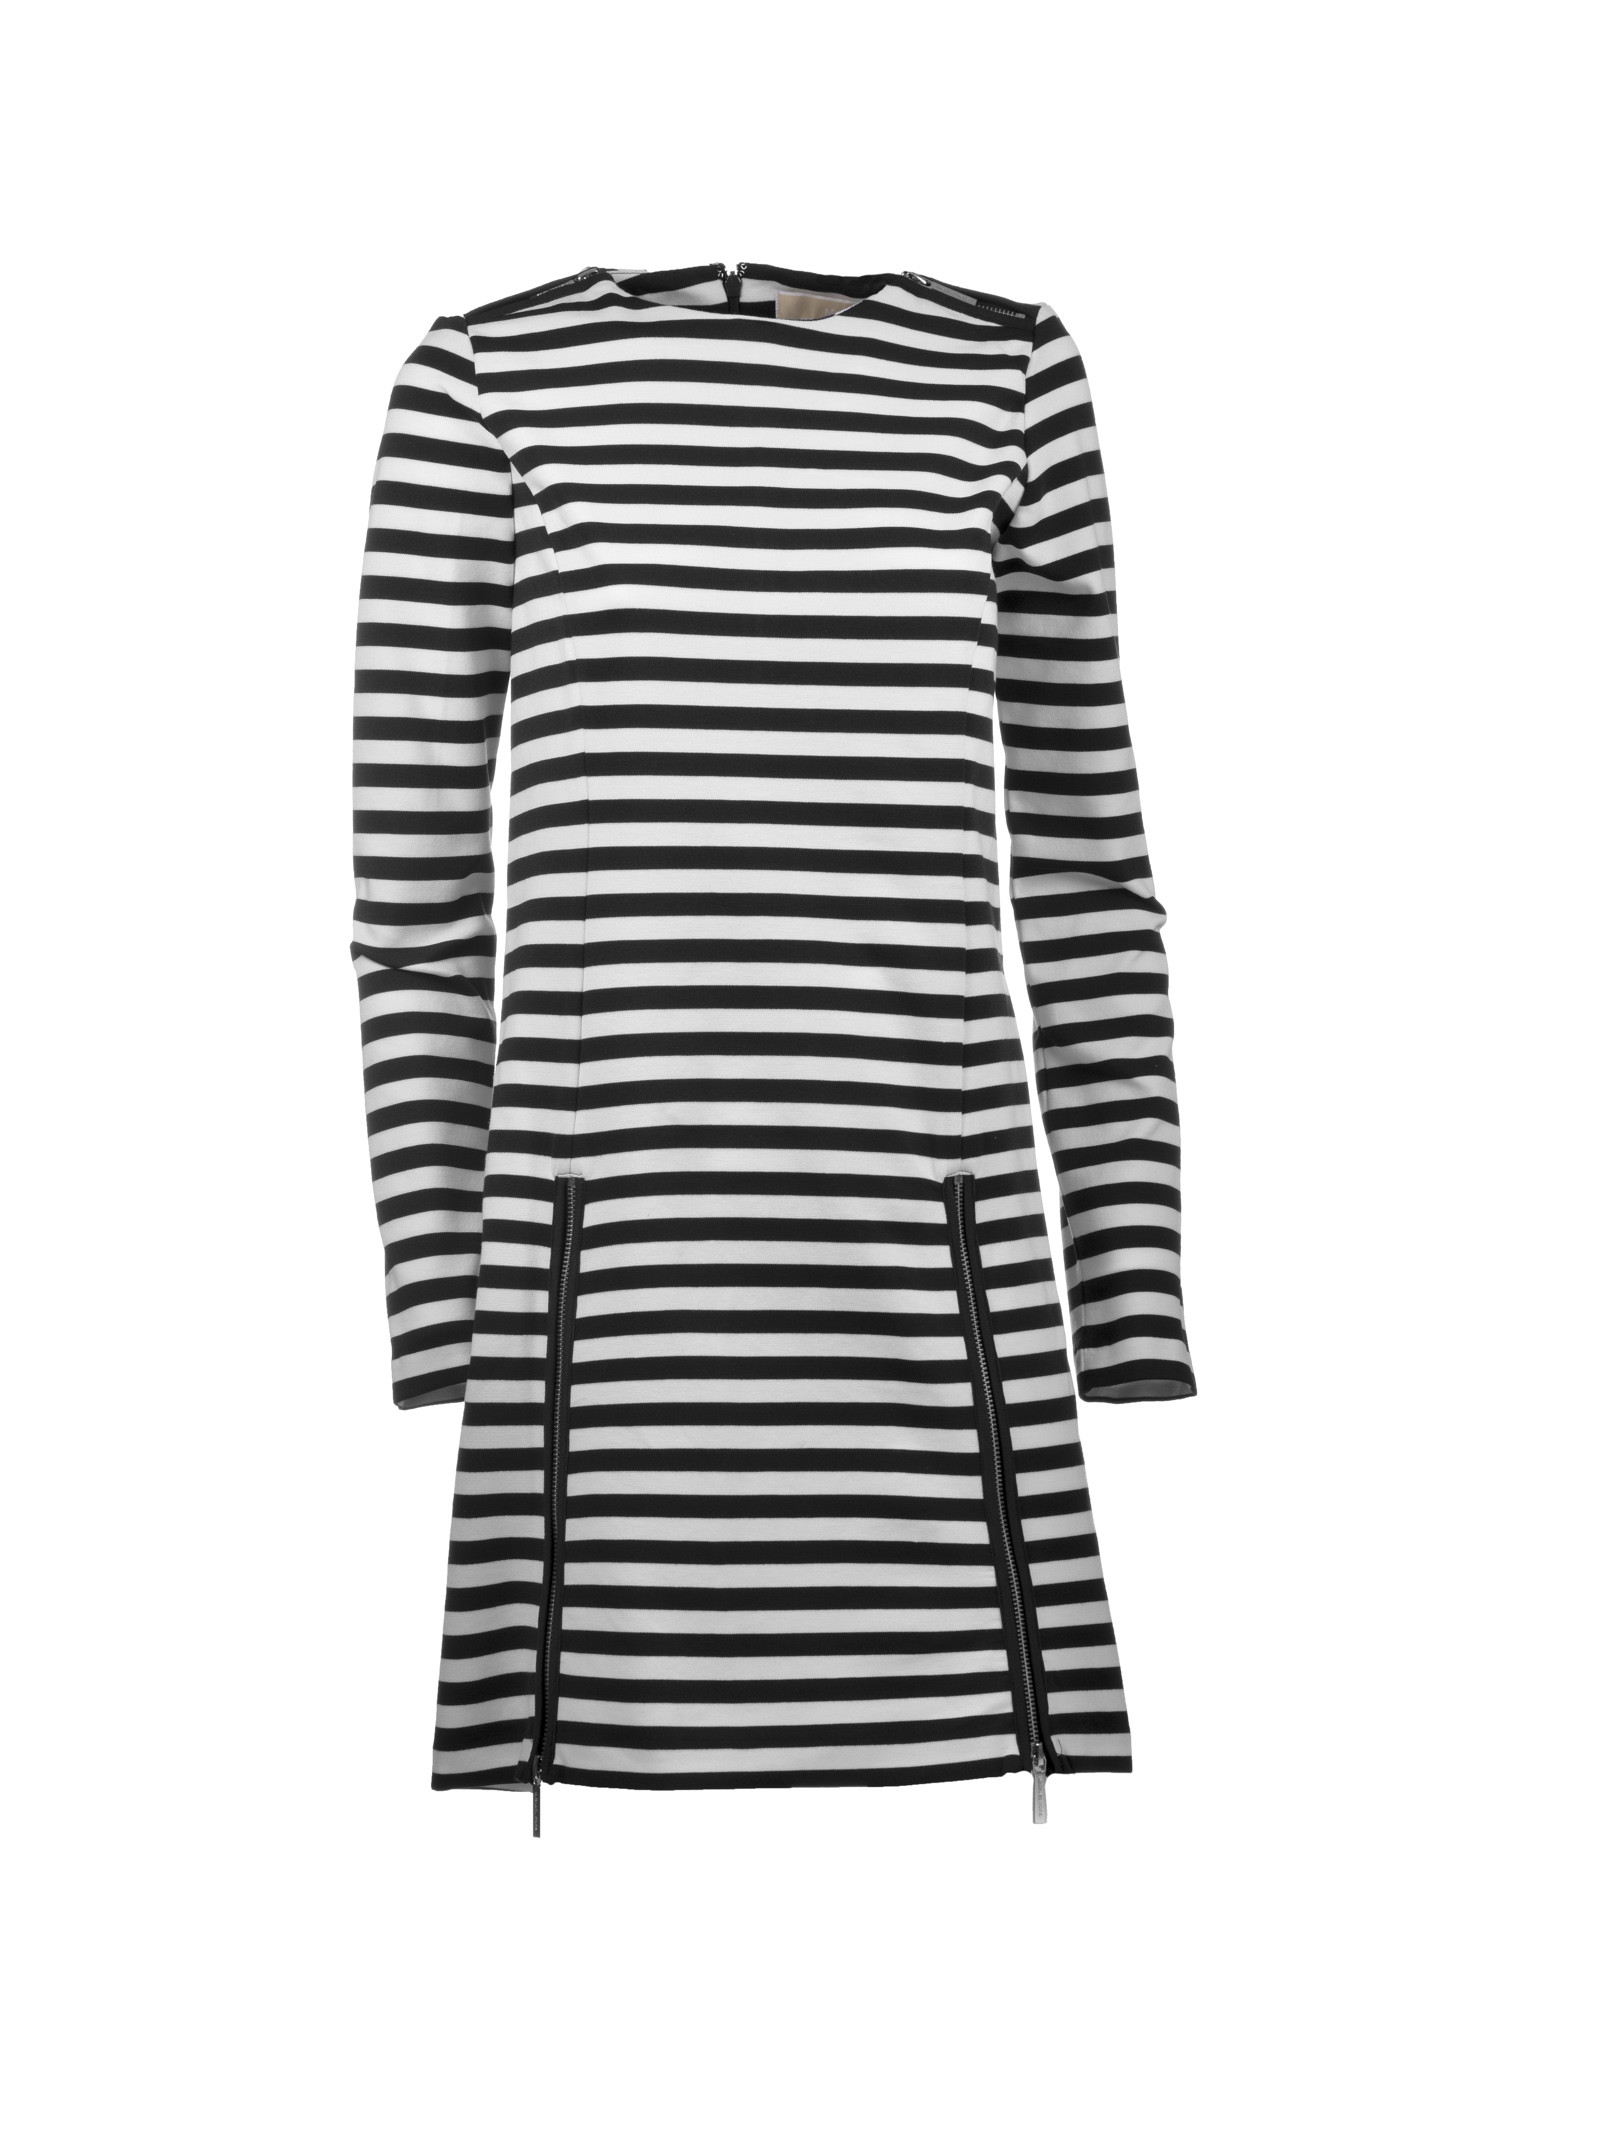 michael kors female 266946 michael kors striped dress